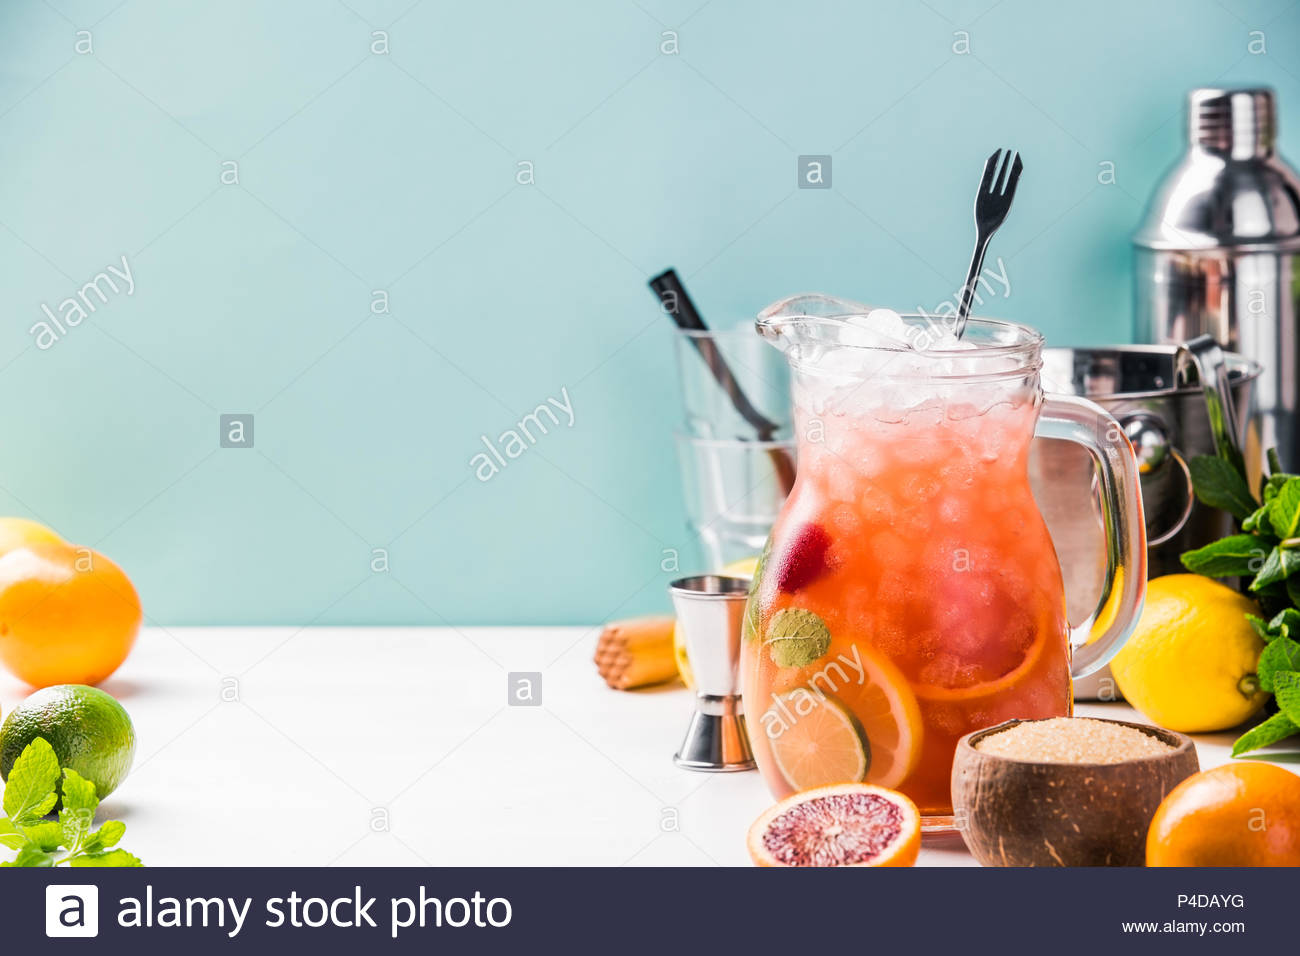 Summer drink and citrus fruits - Stock Image